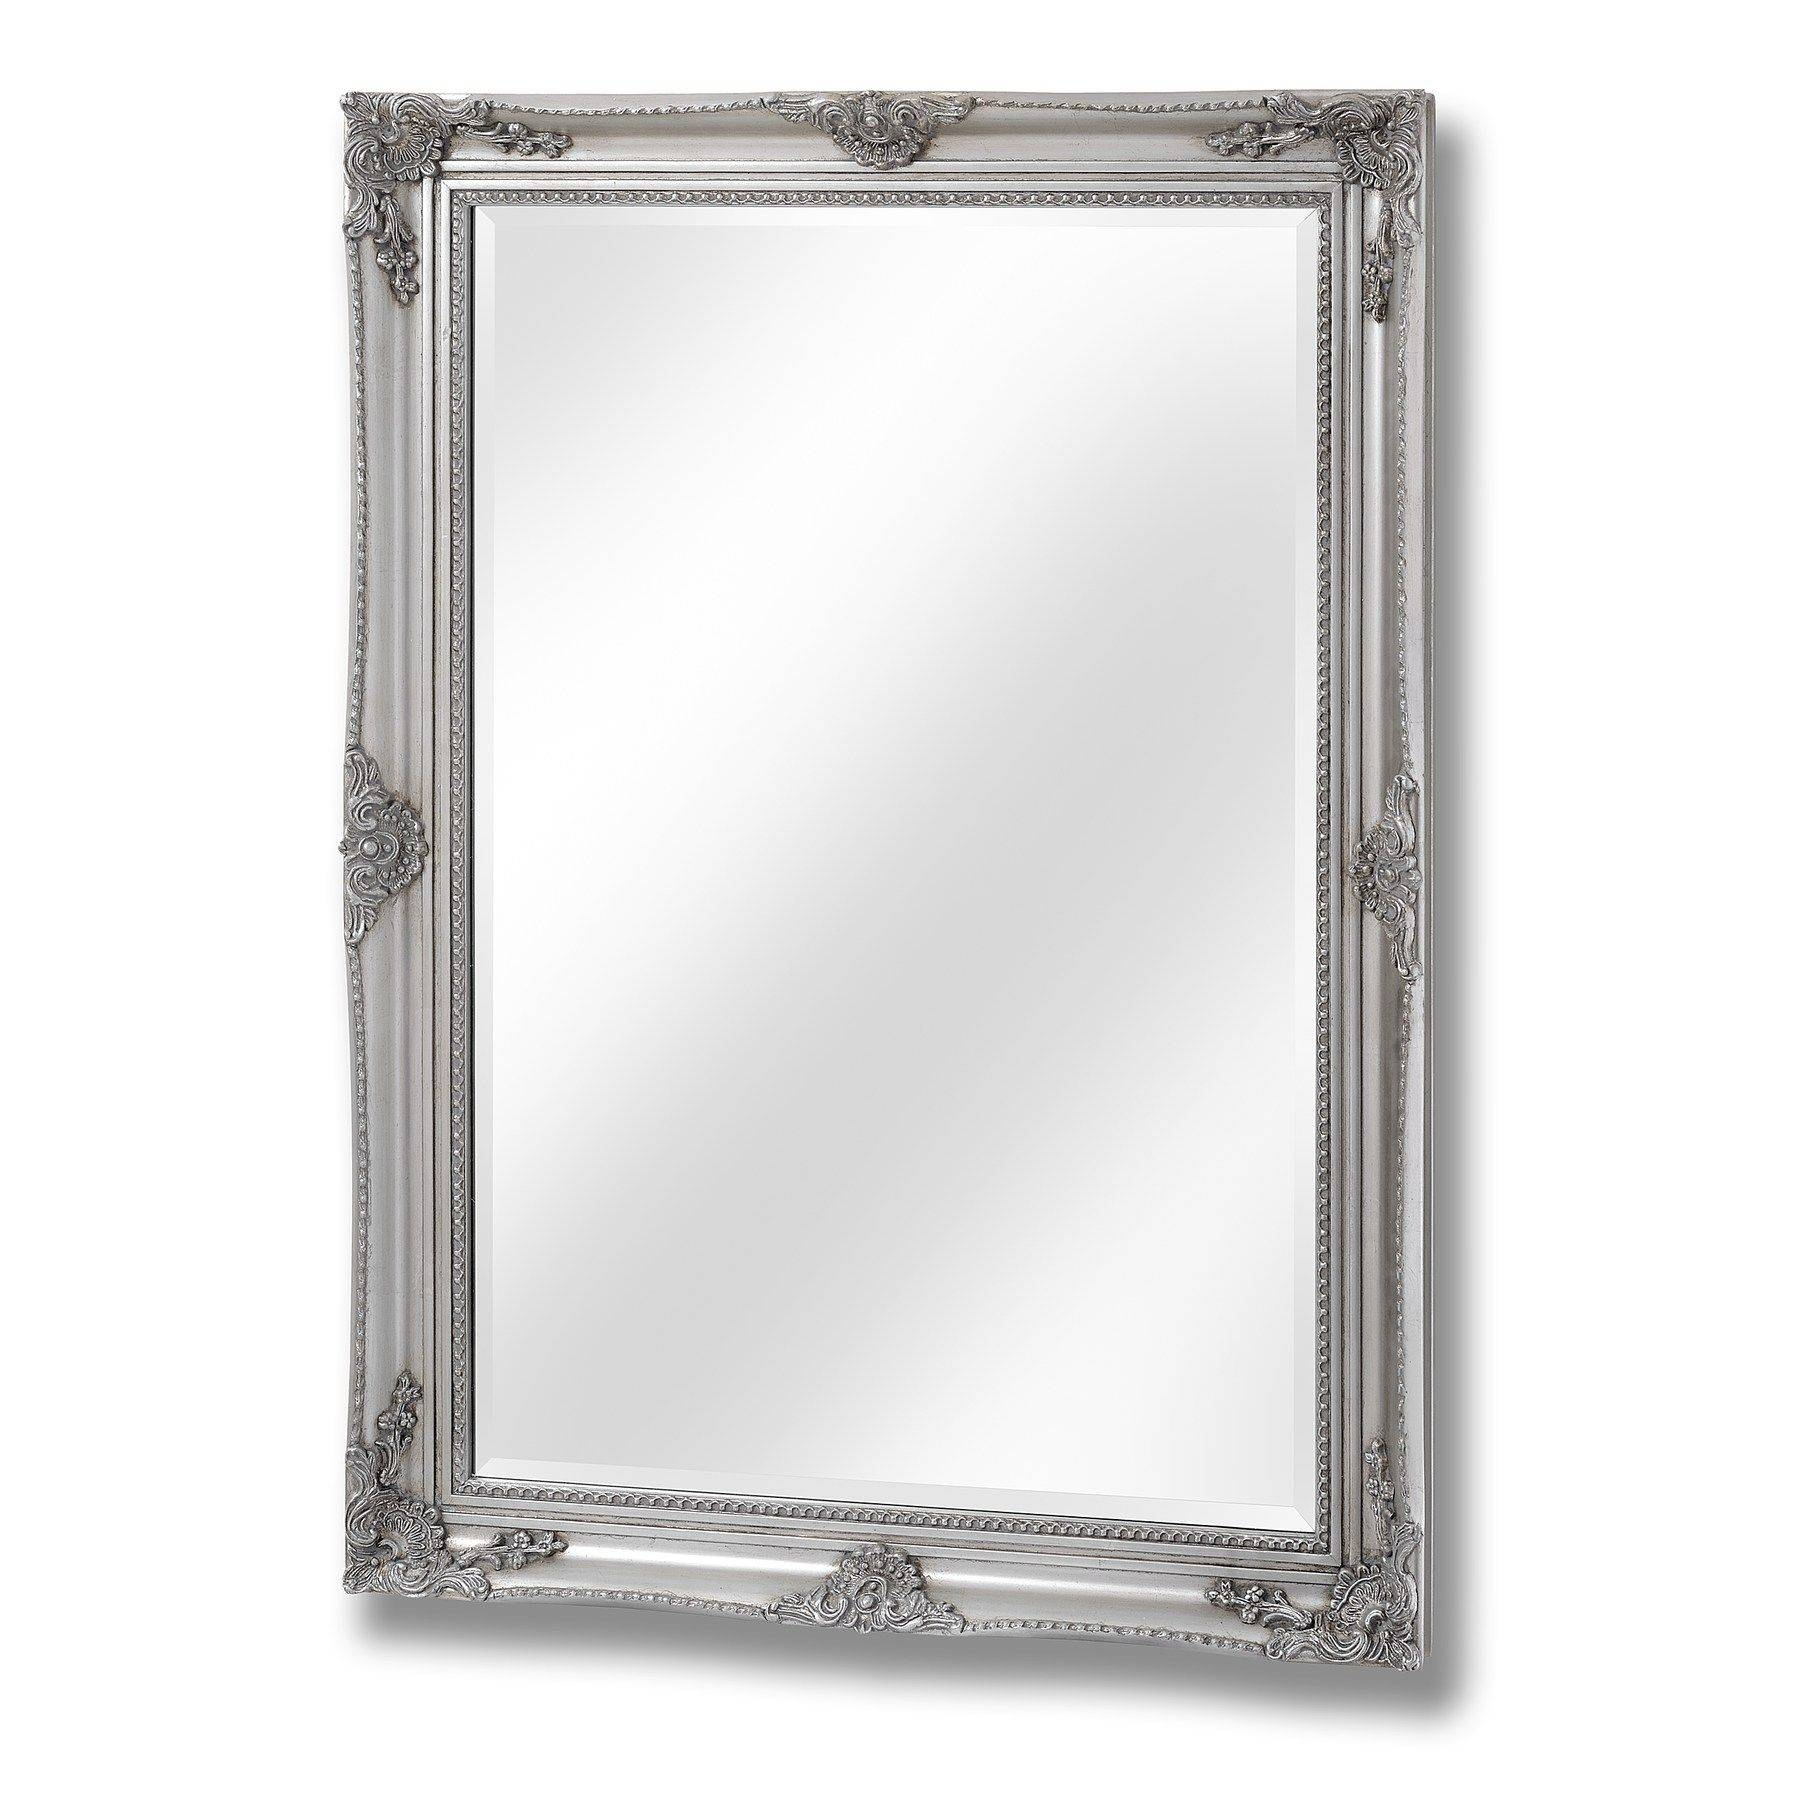 Antique Silver Baroque Style Mirror pertaining to Silver Baroque Mirrors (Image 1 of 15)